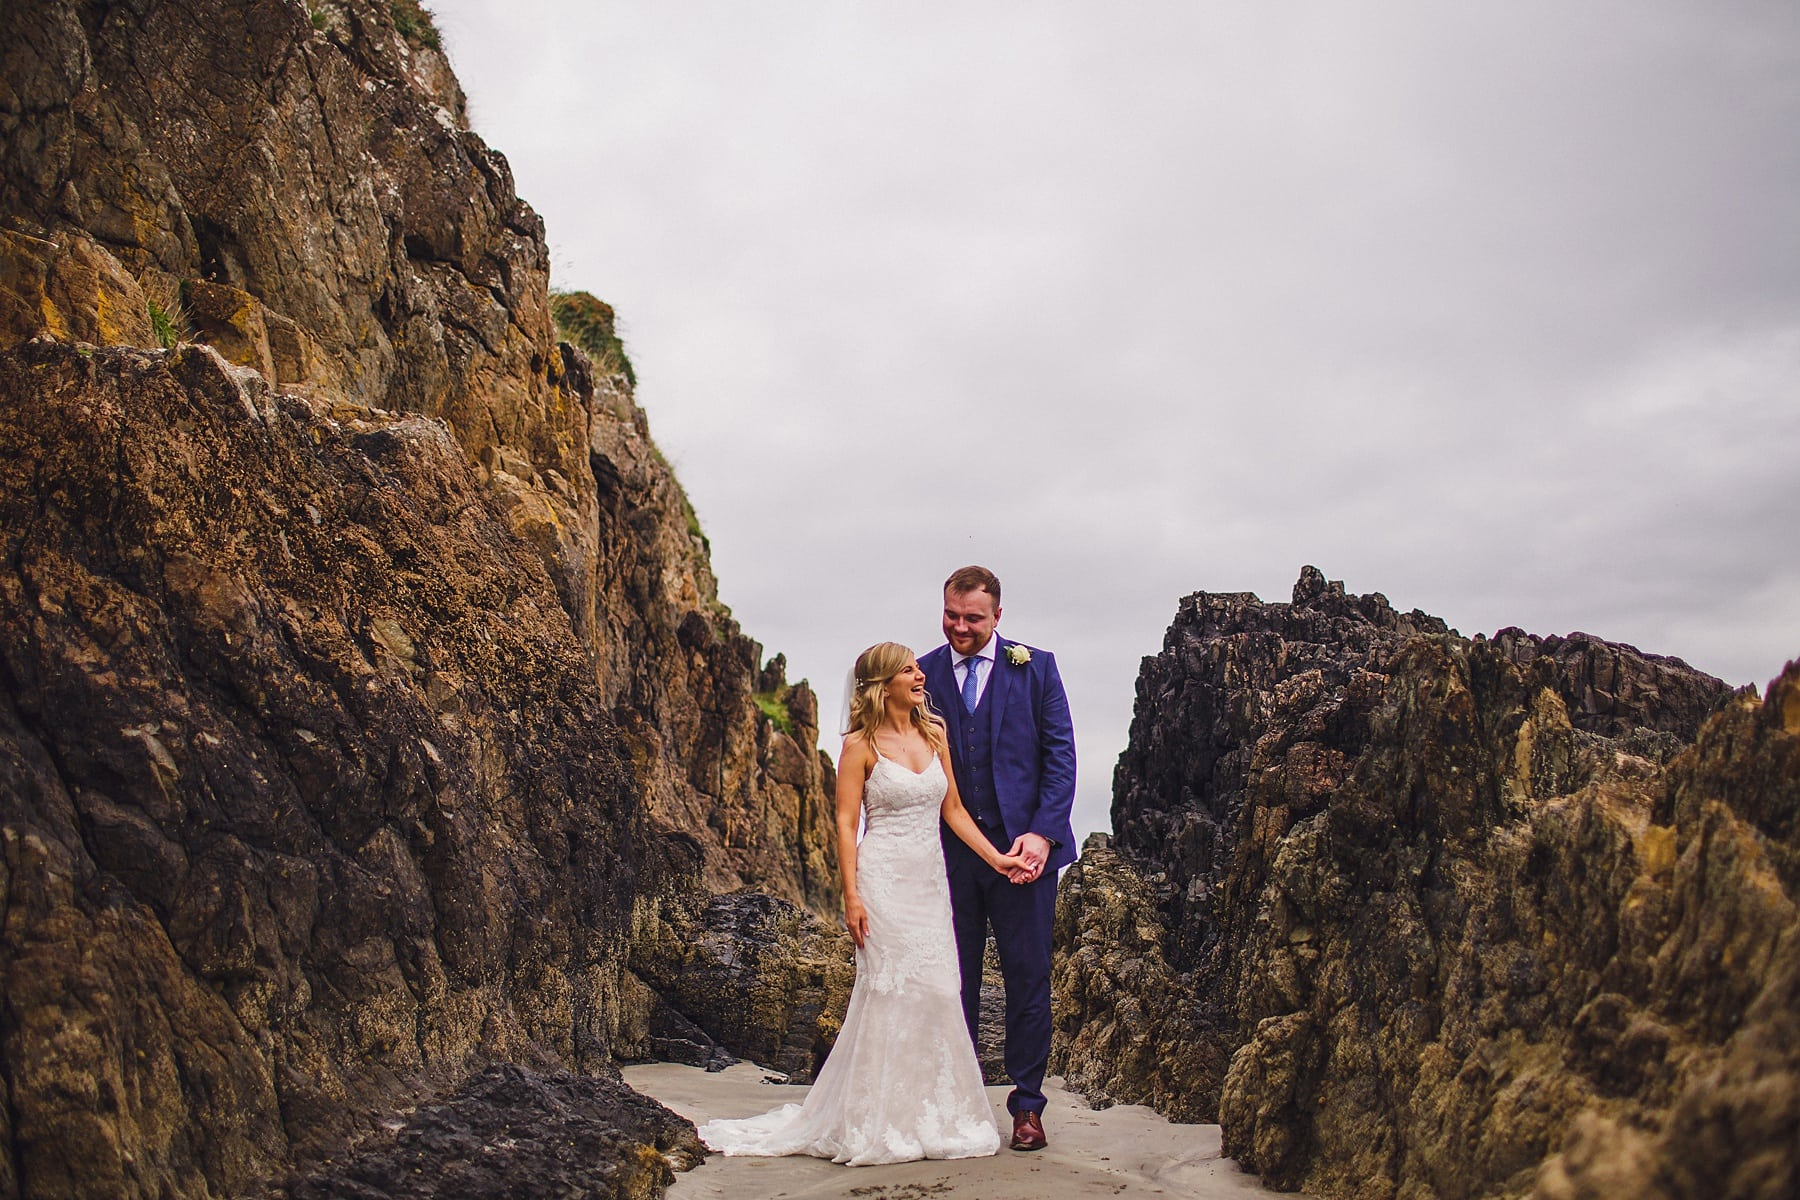 ireland wedding photographer,tinakilly house wedding,borris house wedding,bothy whitepark bay engagement,port eliot wedding,kilruddery house and gardens,donegal beach wedding,lough shore antrim sunset,ivory pavilion galgorm wedding,